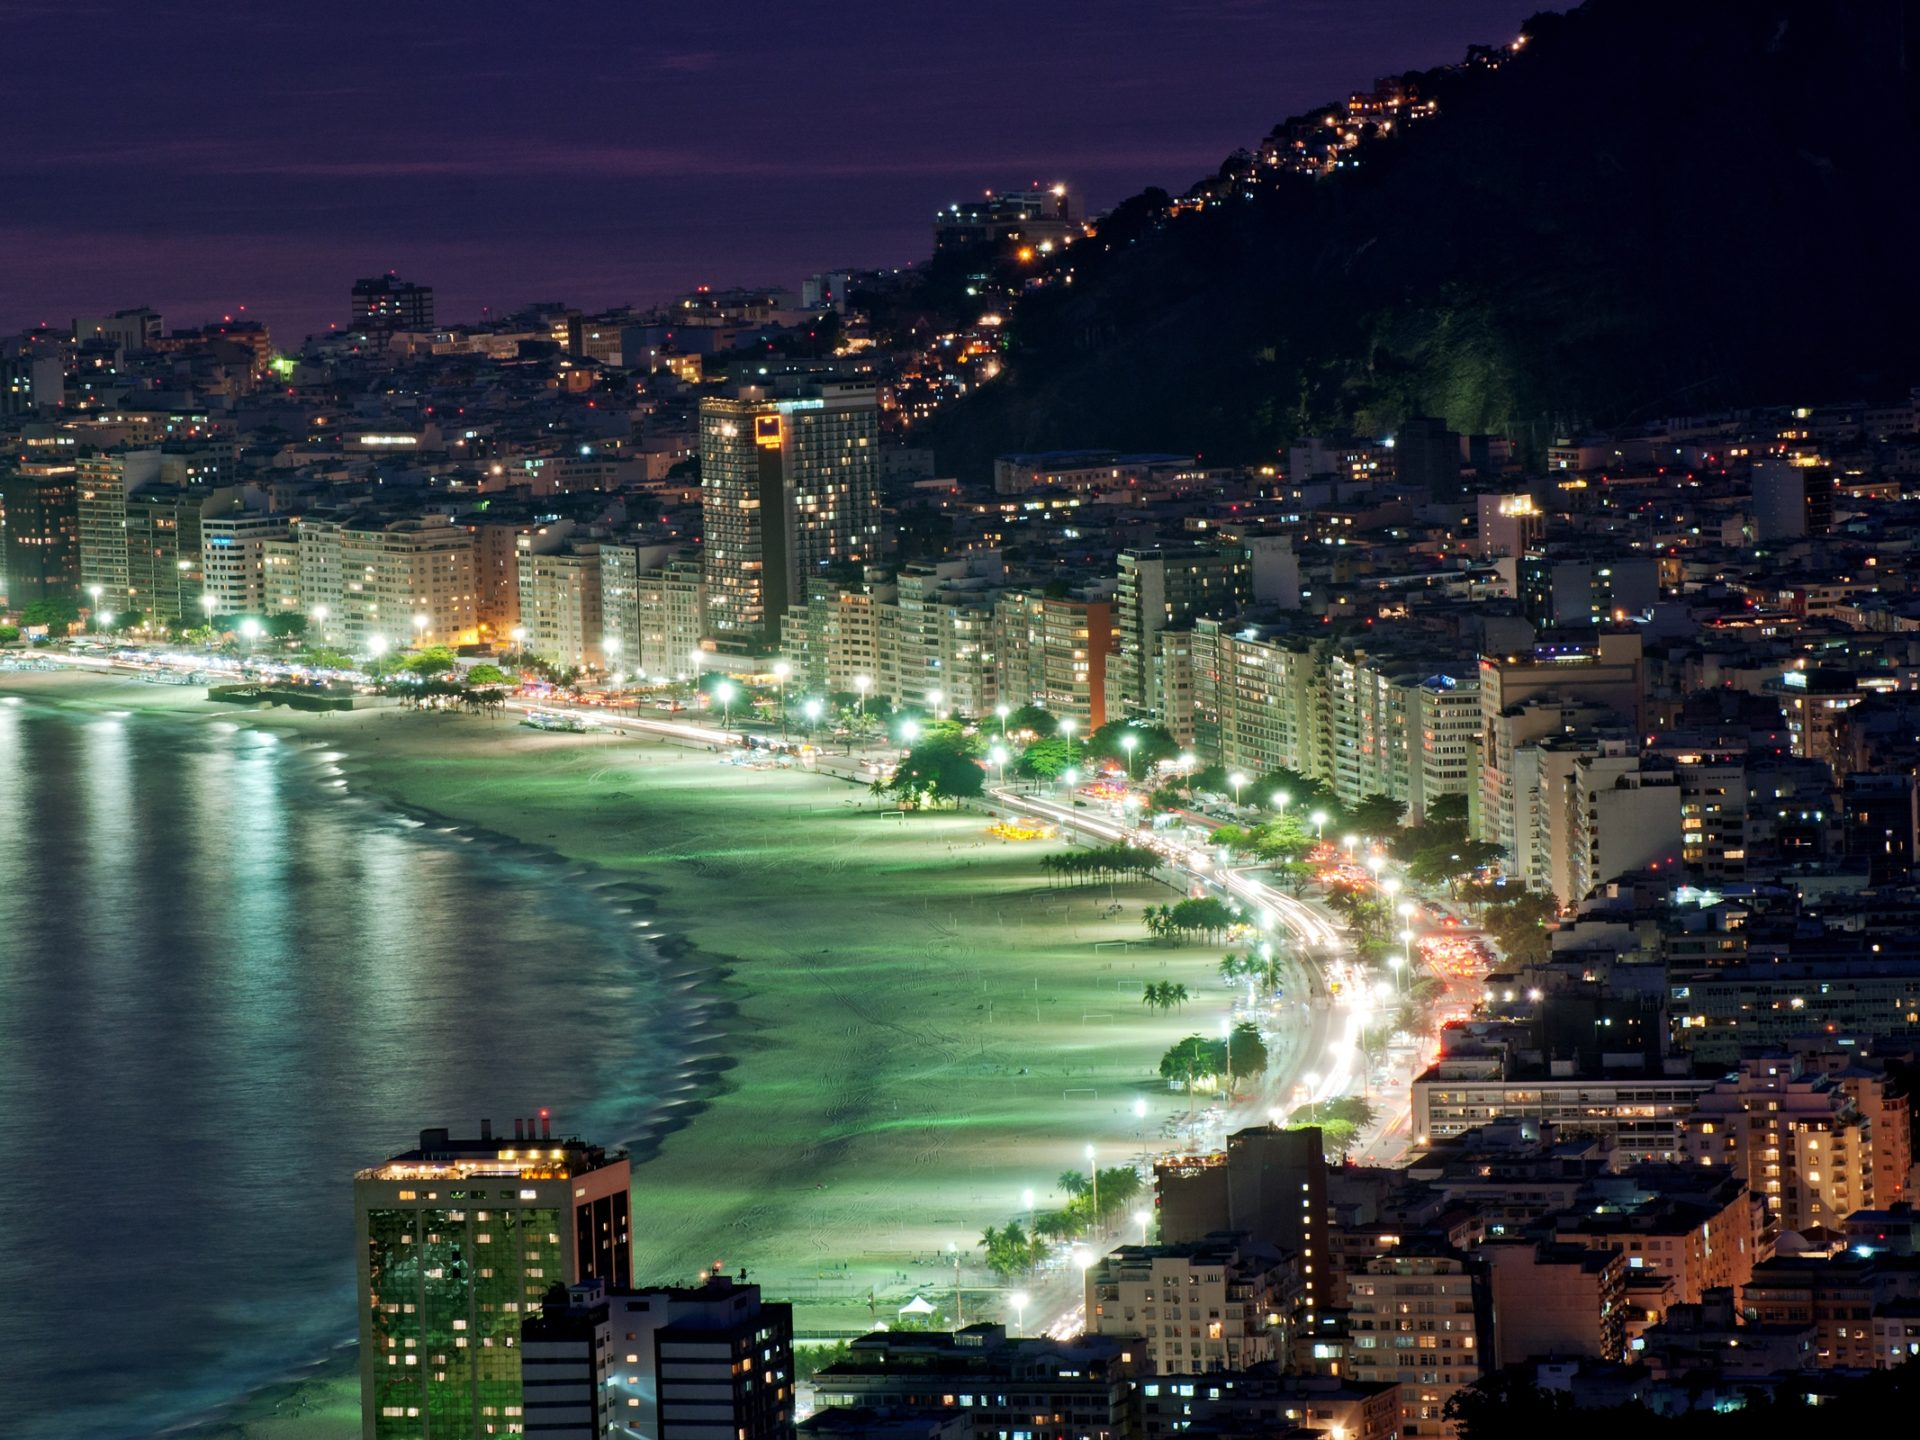 Iphone 5 Hd Wallpapers Cars Rio De Janeiro At Night 7976954 Wallpapers13 Com